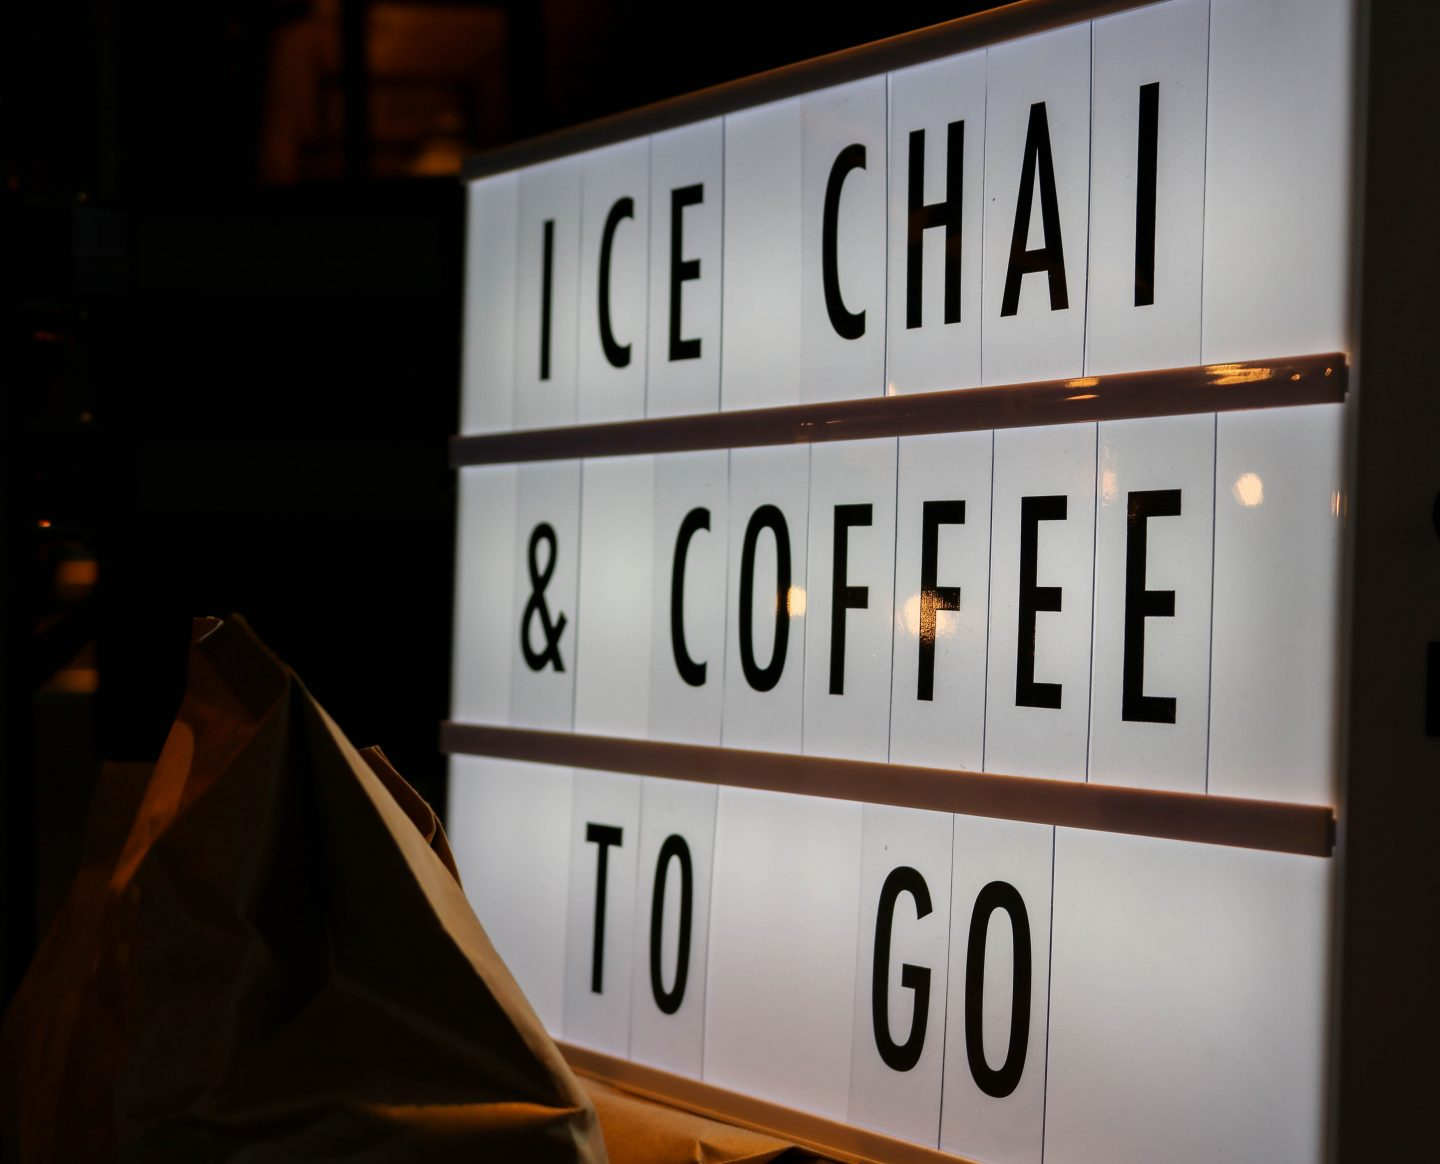 Ice Chai and Coffee to go at Chai Ki, Canary Wharf - Lifestyle Enthusiast Blog Recovery Brunch Review